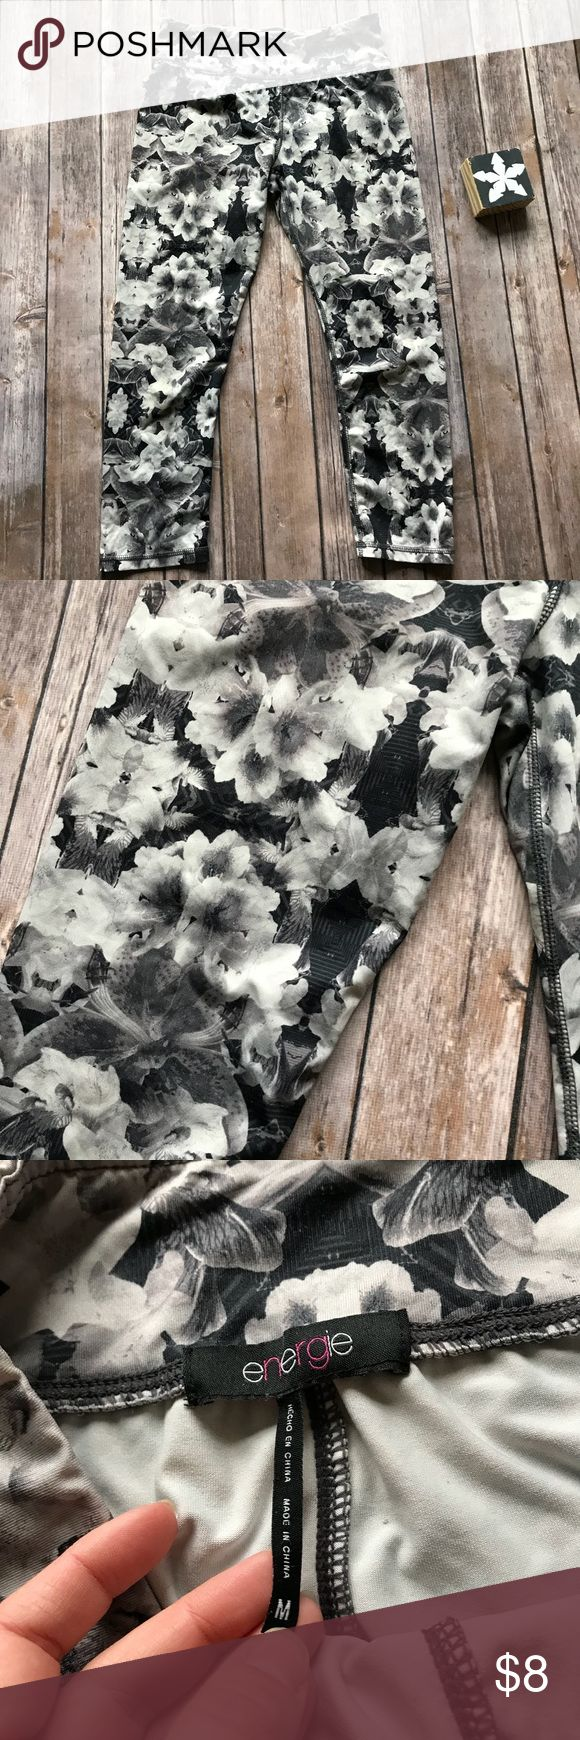 Energie Floral Cropped Athletic Leggings Medium Like new gray and black floral Cropped Athletic Leggings 🛍Black Friday Sale Item🛍 Bundle for a discount!🛍 From a clean and smoke free home🛍 Quick Shipping🛍 Get it now before it's gone! 🛍 Energie Pants Capris